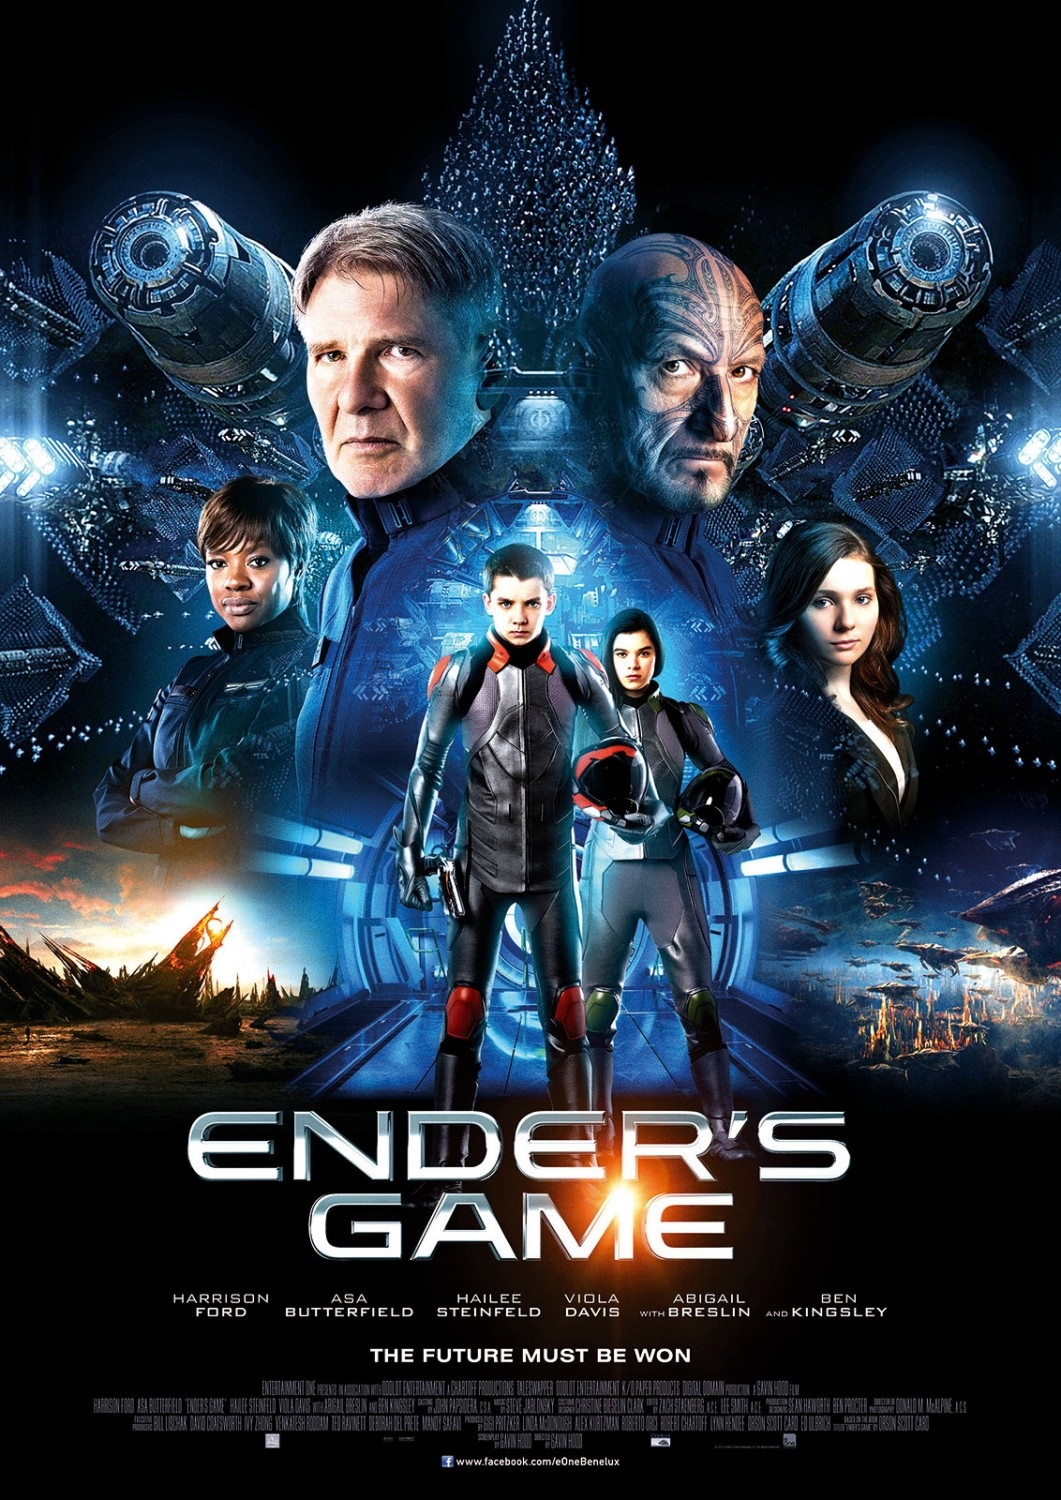 Ender's Game-Official Poster Banner PROMO POSTER-22OUTUBRO2013